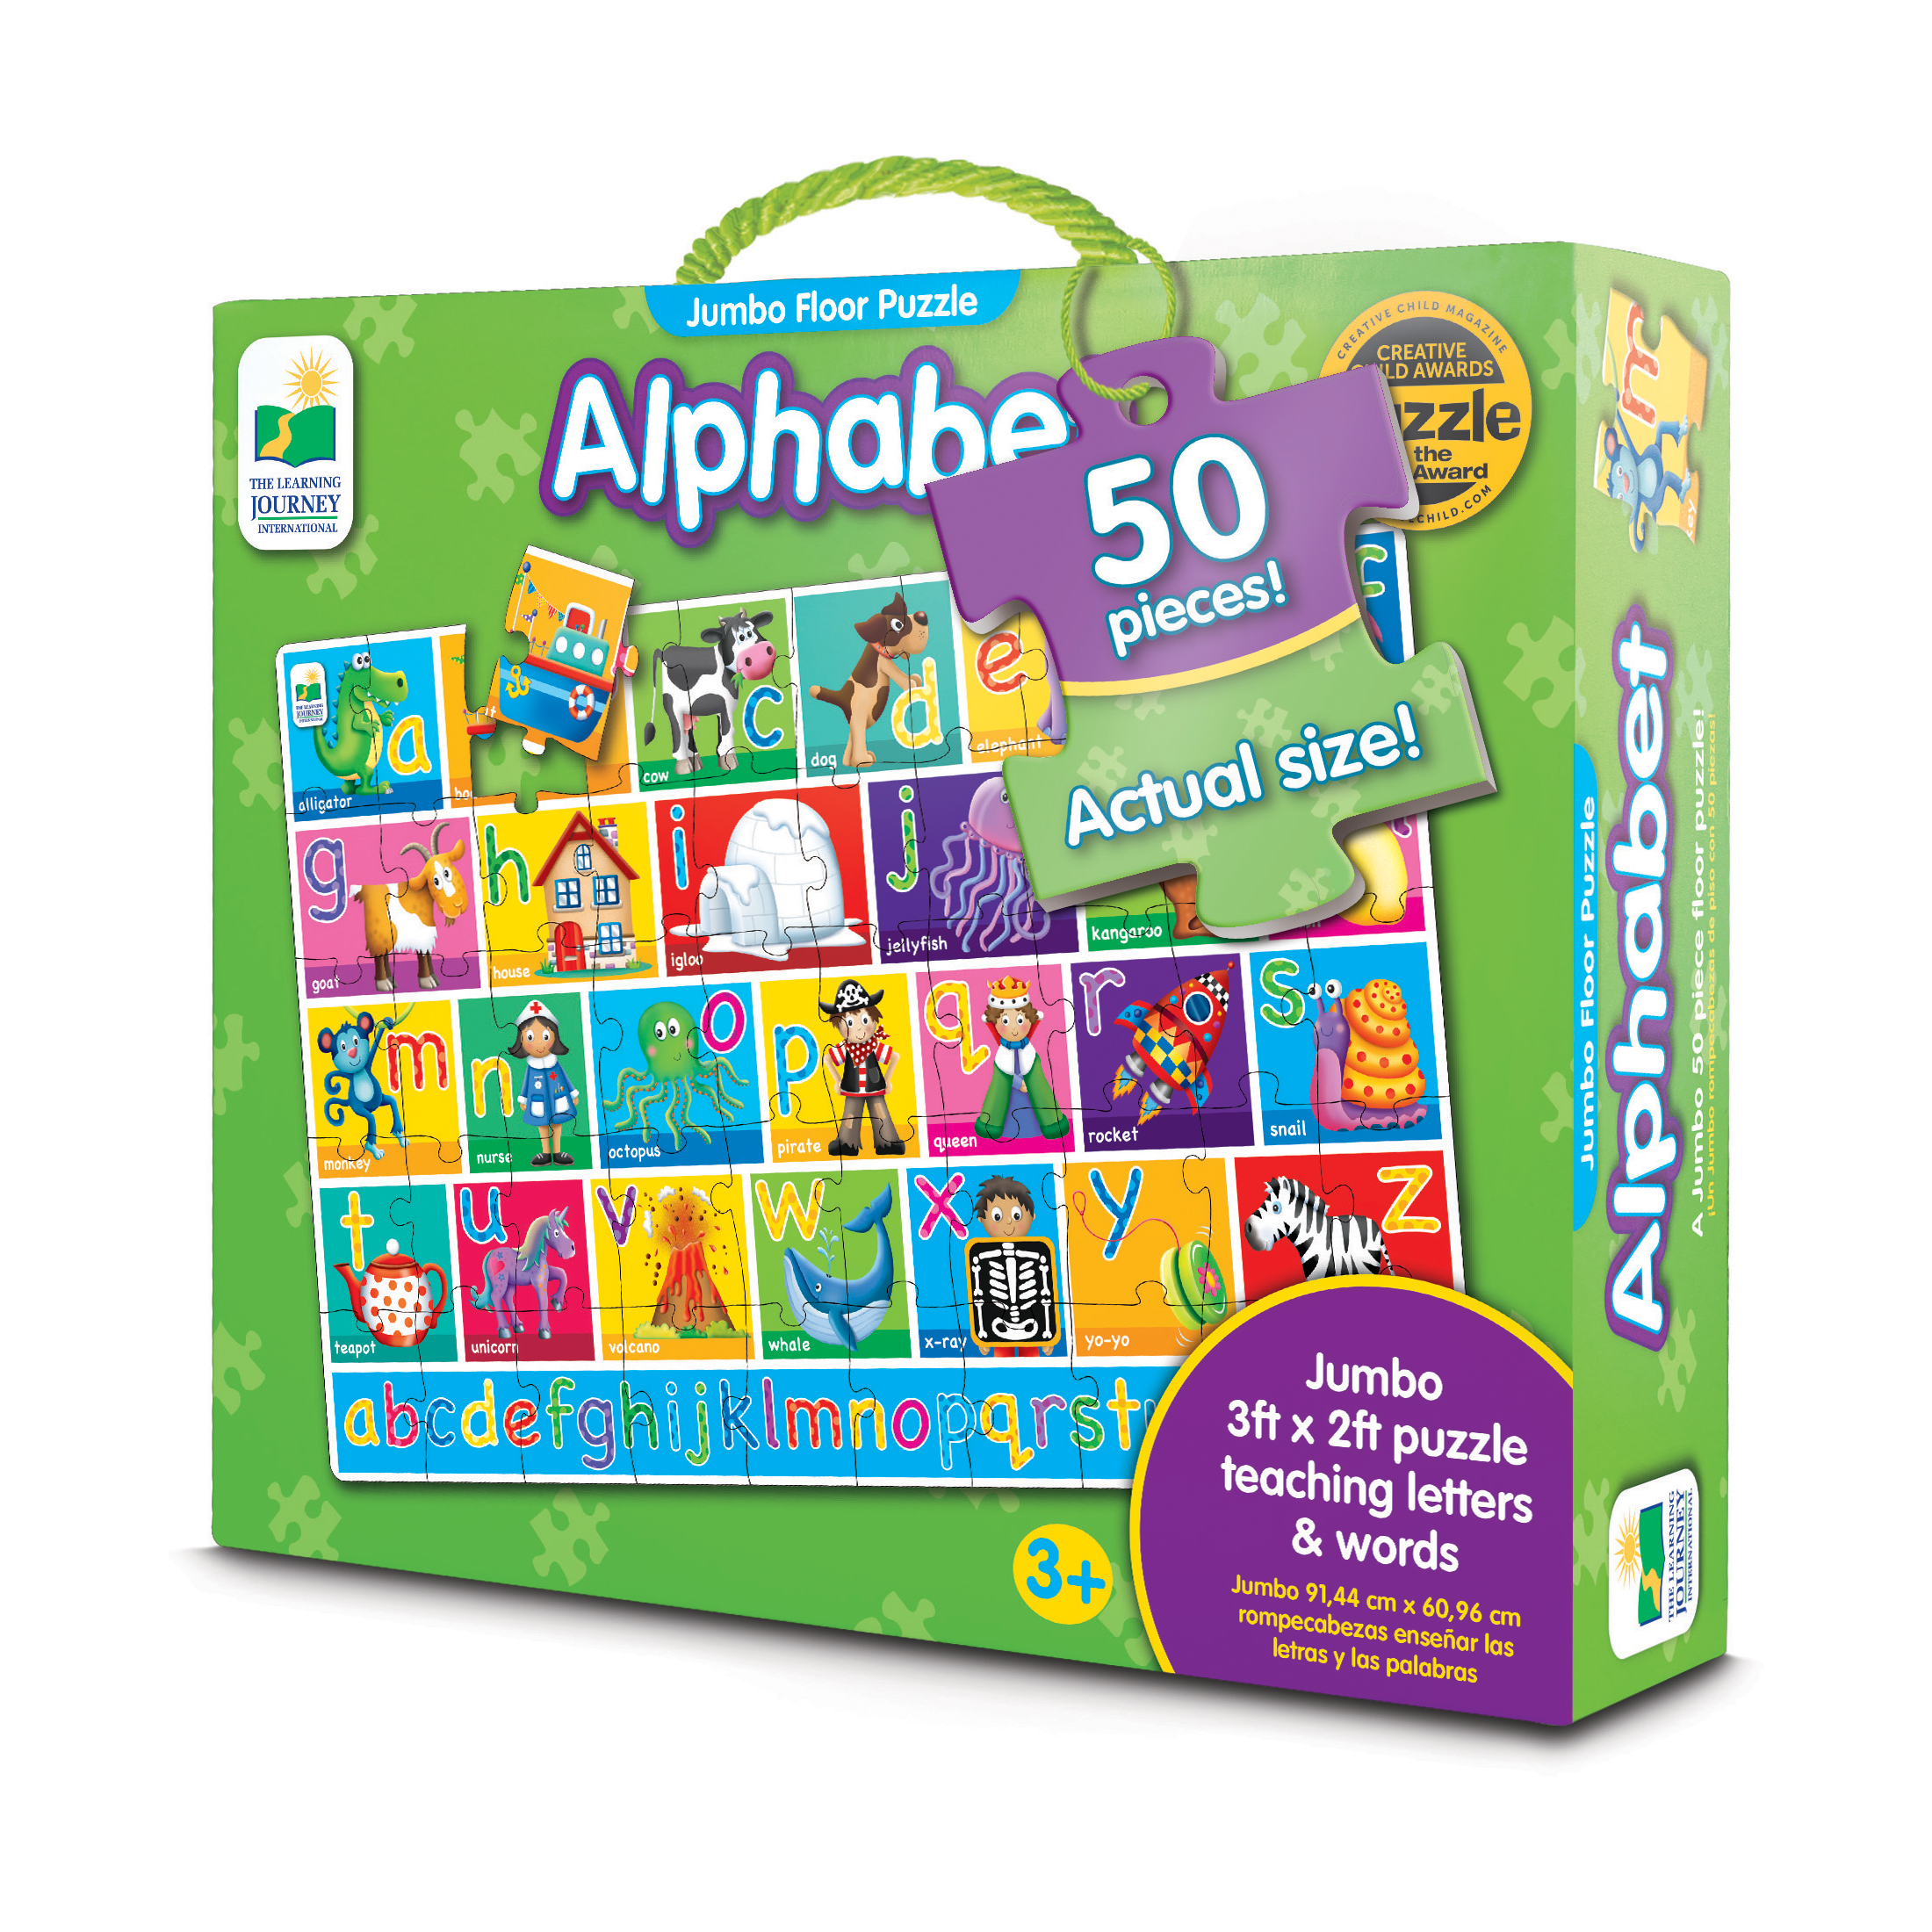 The Learning Journey Jumbo Floor Puzzles, Alphabet Floor Puzzle by The Learning Journey